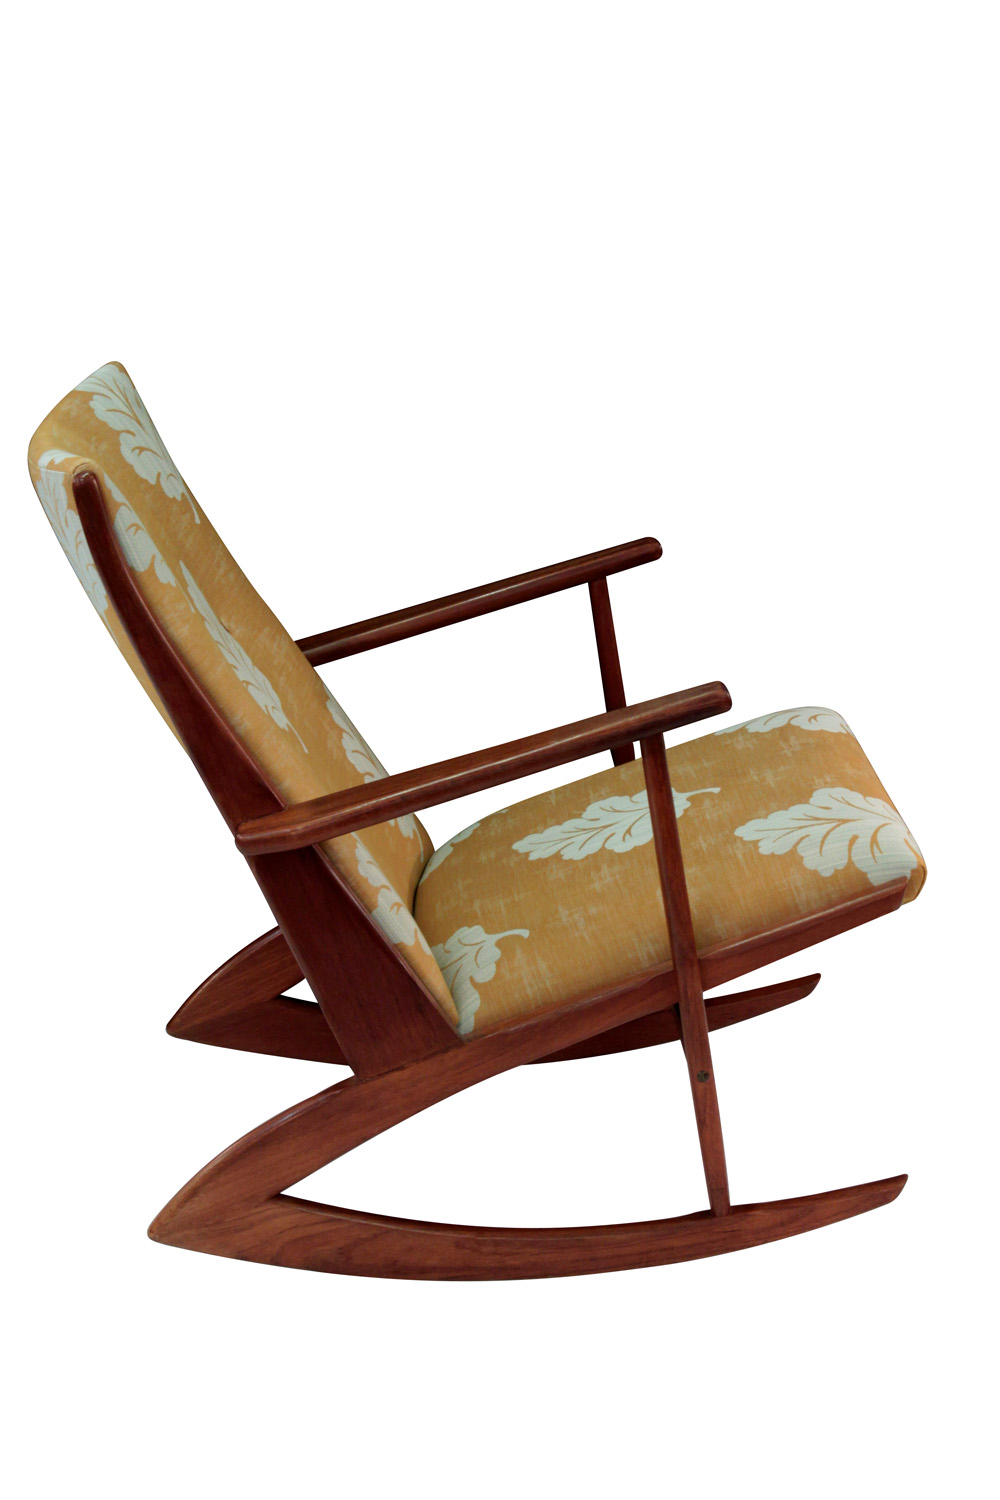 Kubus 28 teak by Georg Jensen rocker2 detail1 hires.jpg